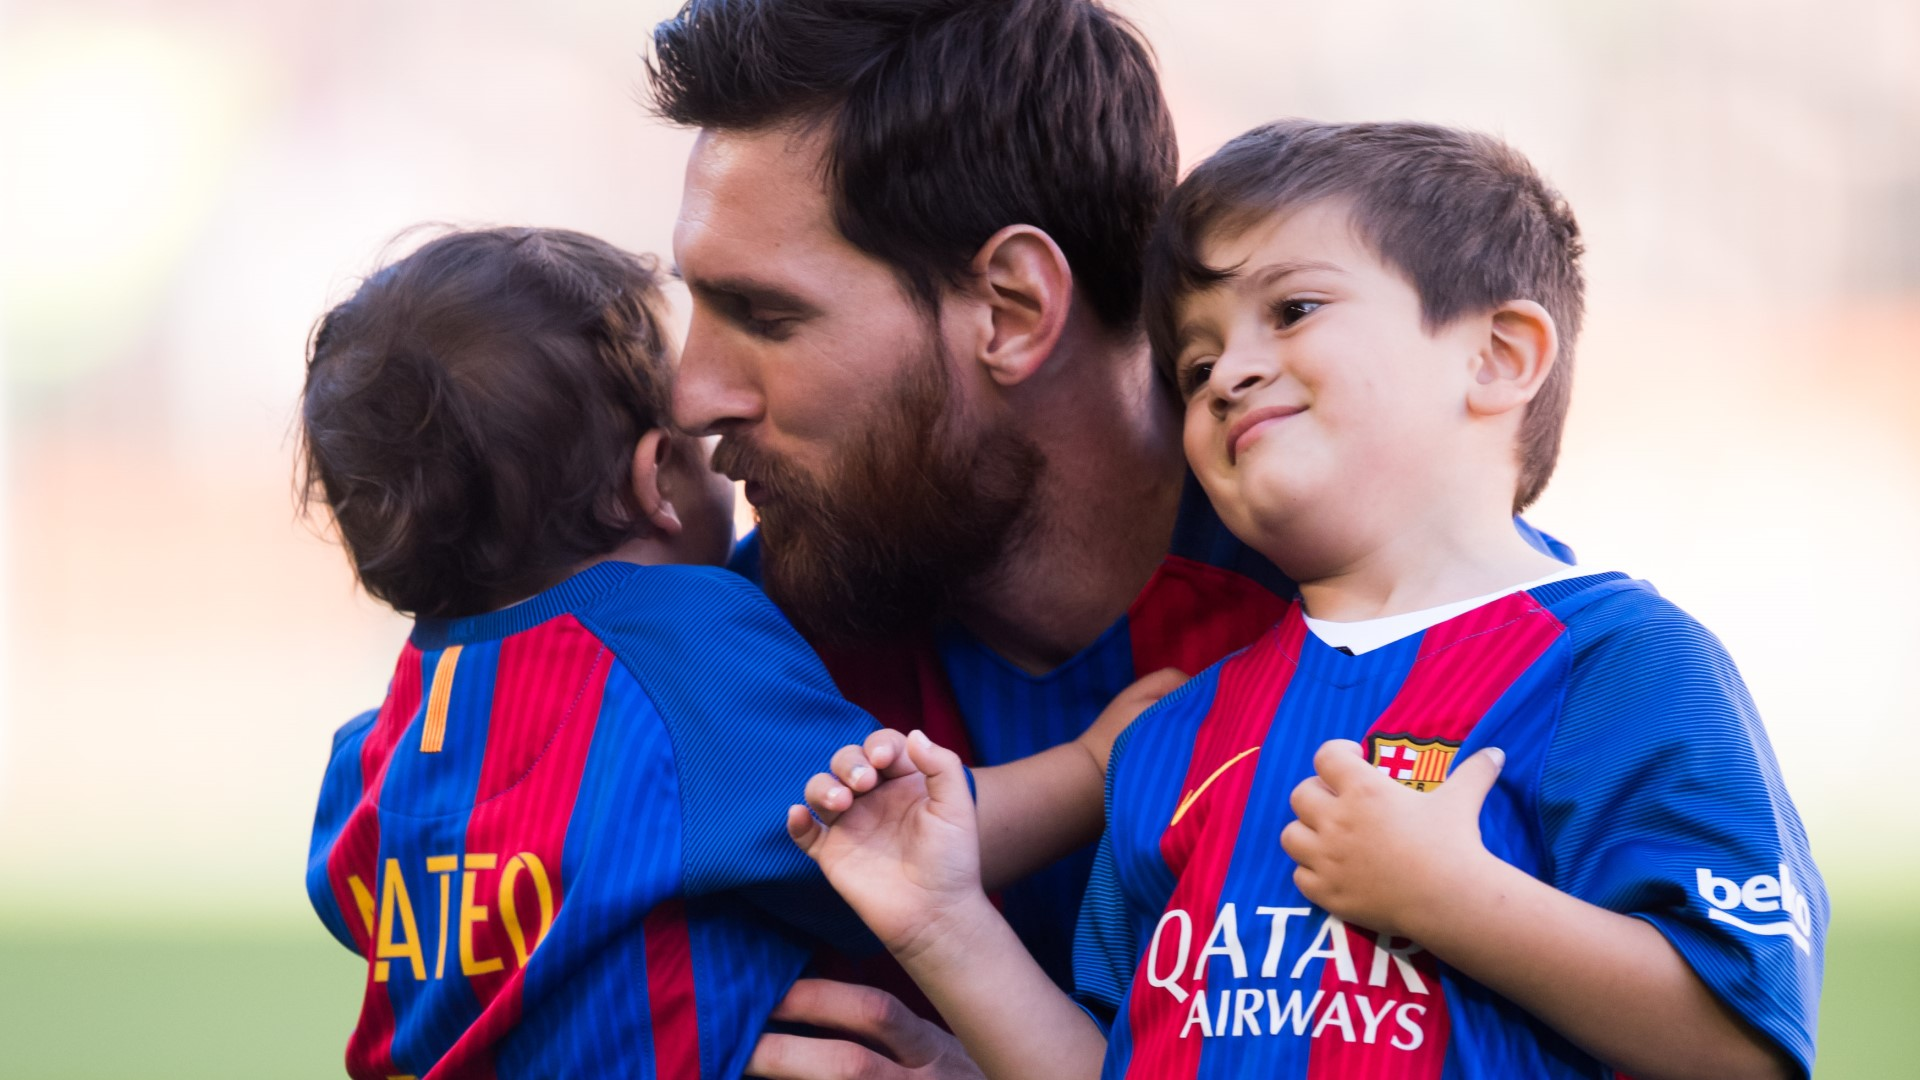 Are mistaken. Lionel messi son suggest you